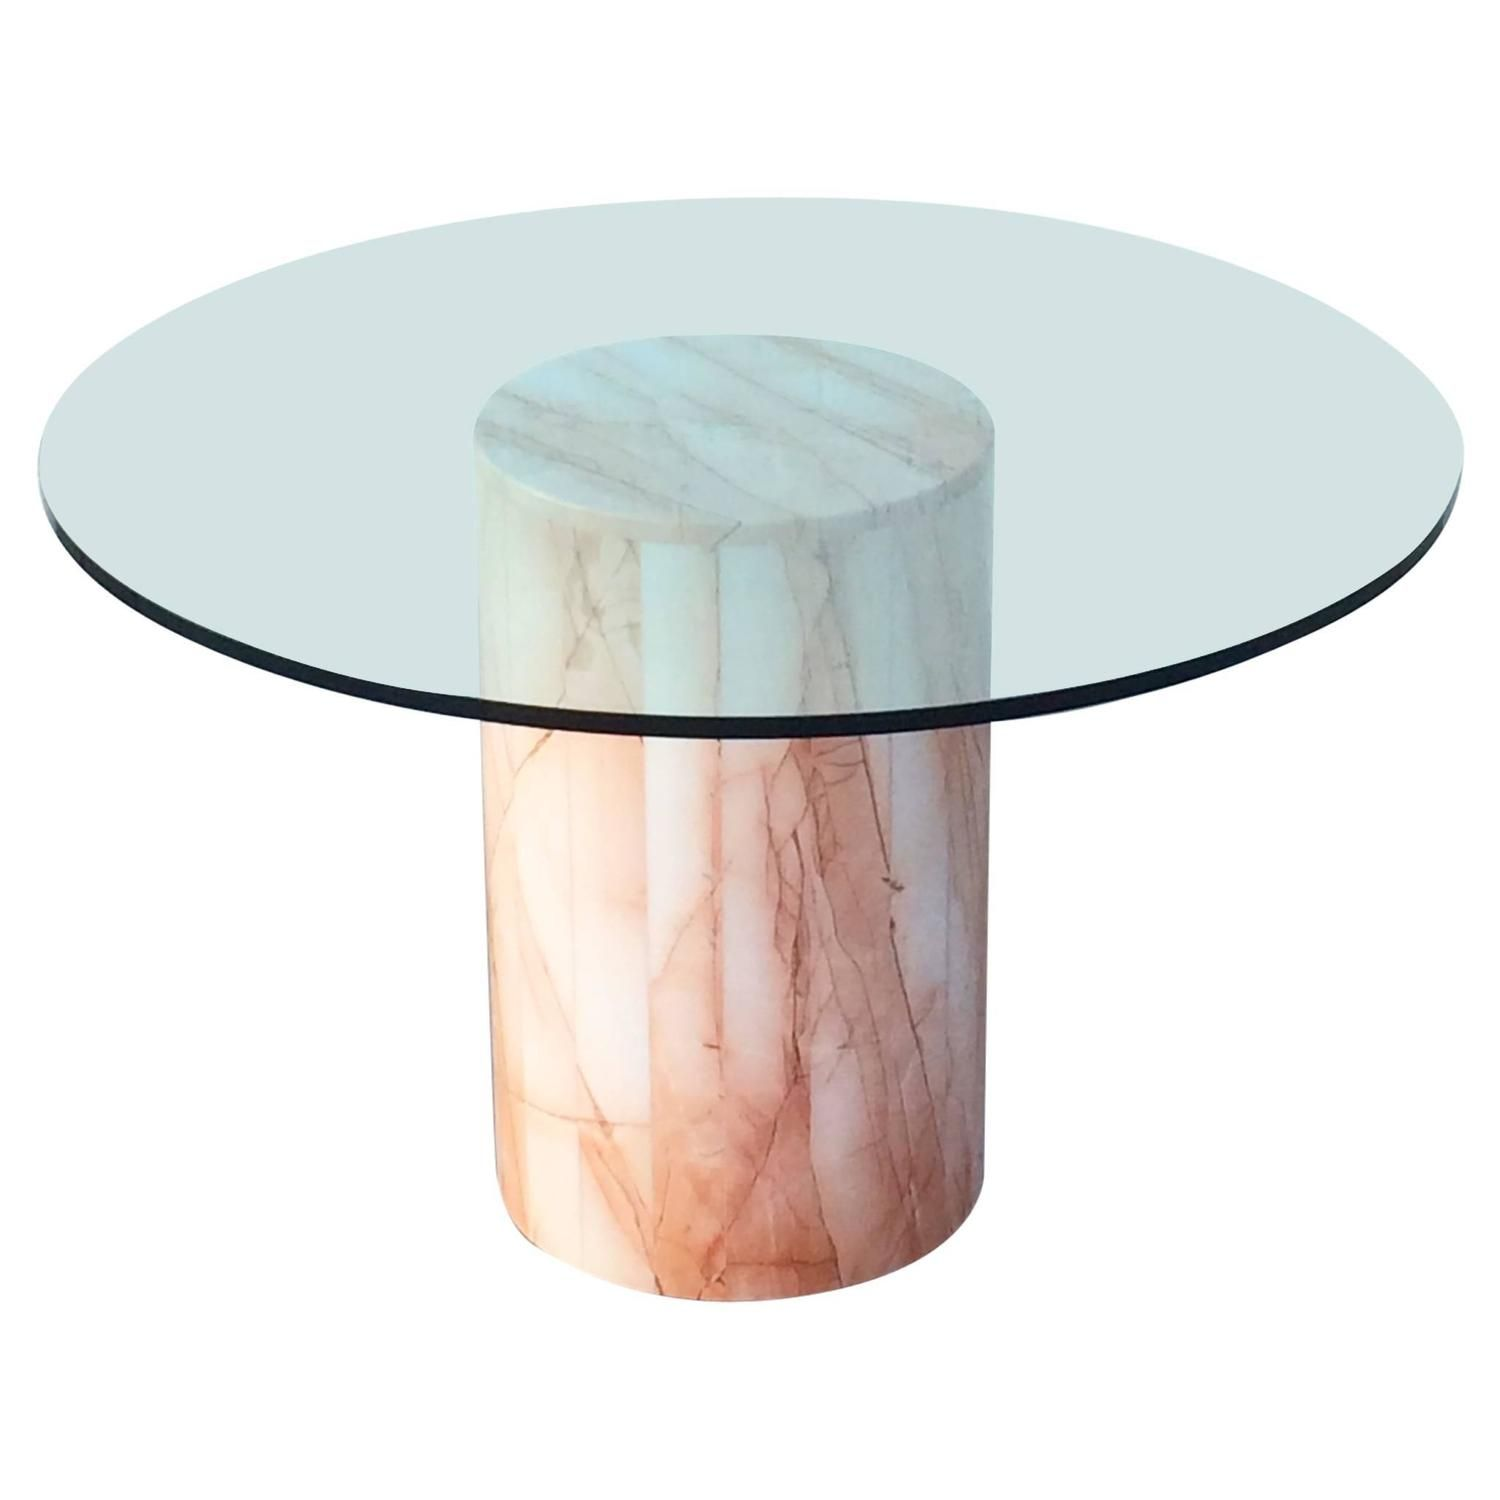 Italian Marble and Glass Dining Table | Pinterest | Italian marble ...